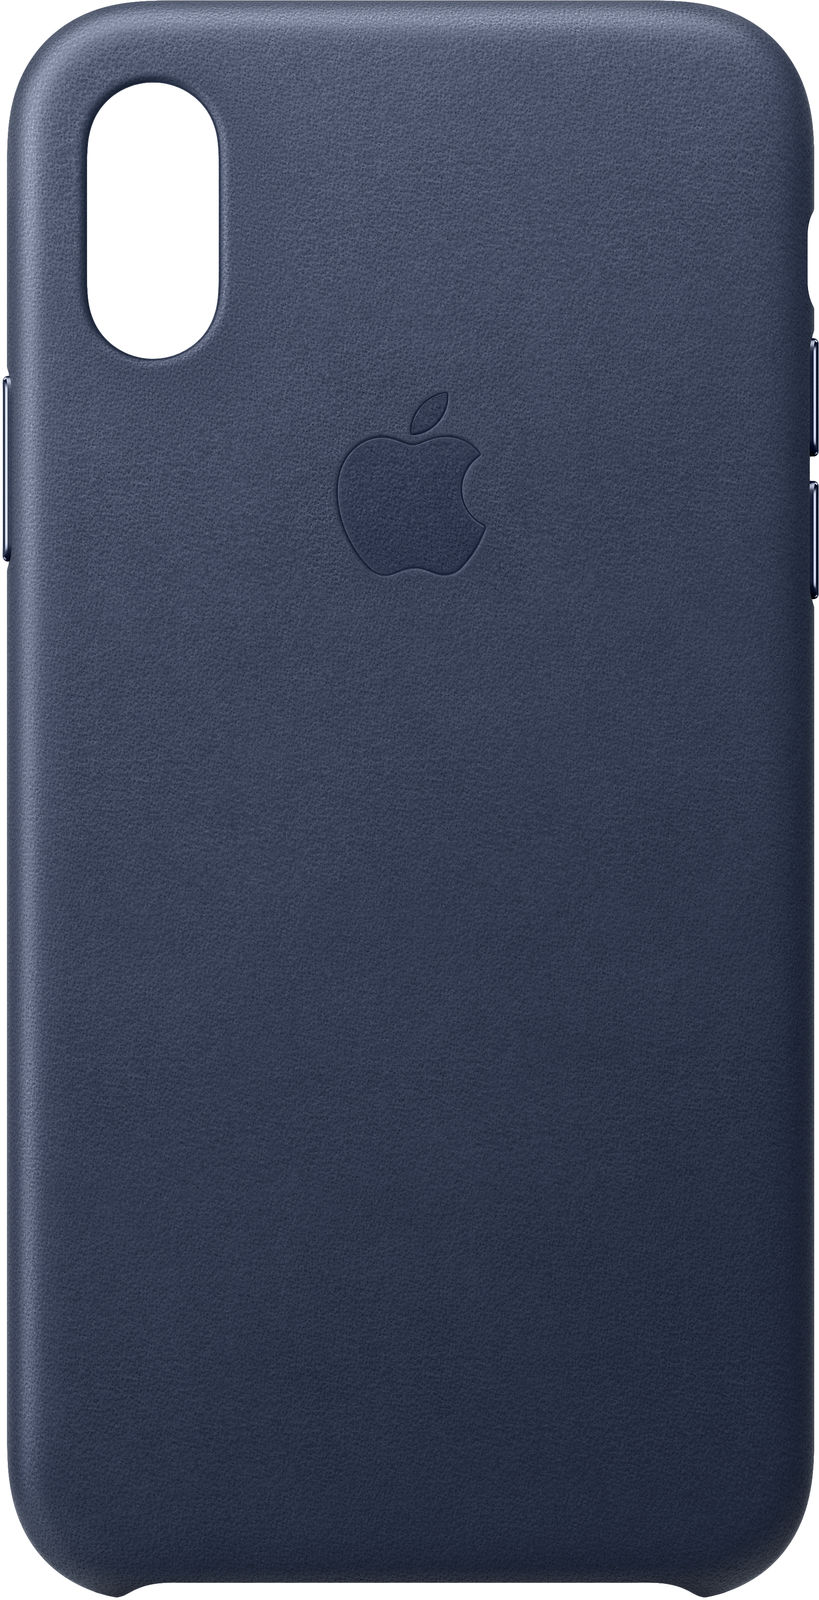 iPhone Xs - Leather Case - Midnight Blue